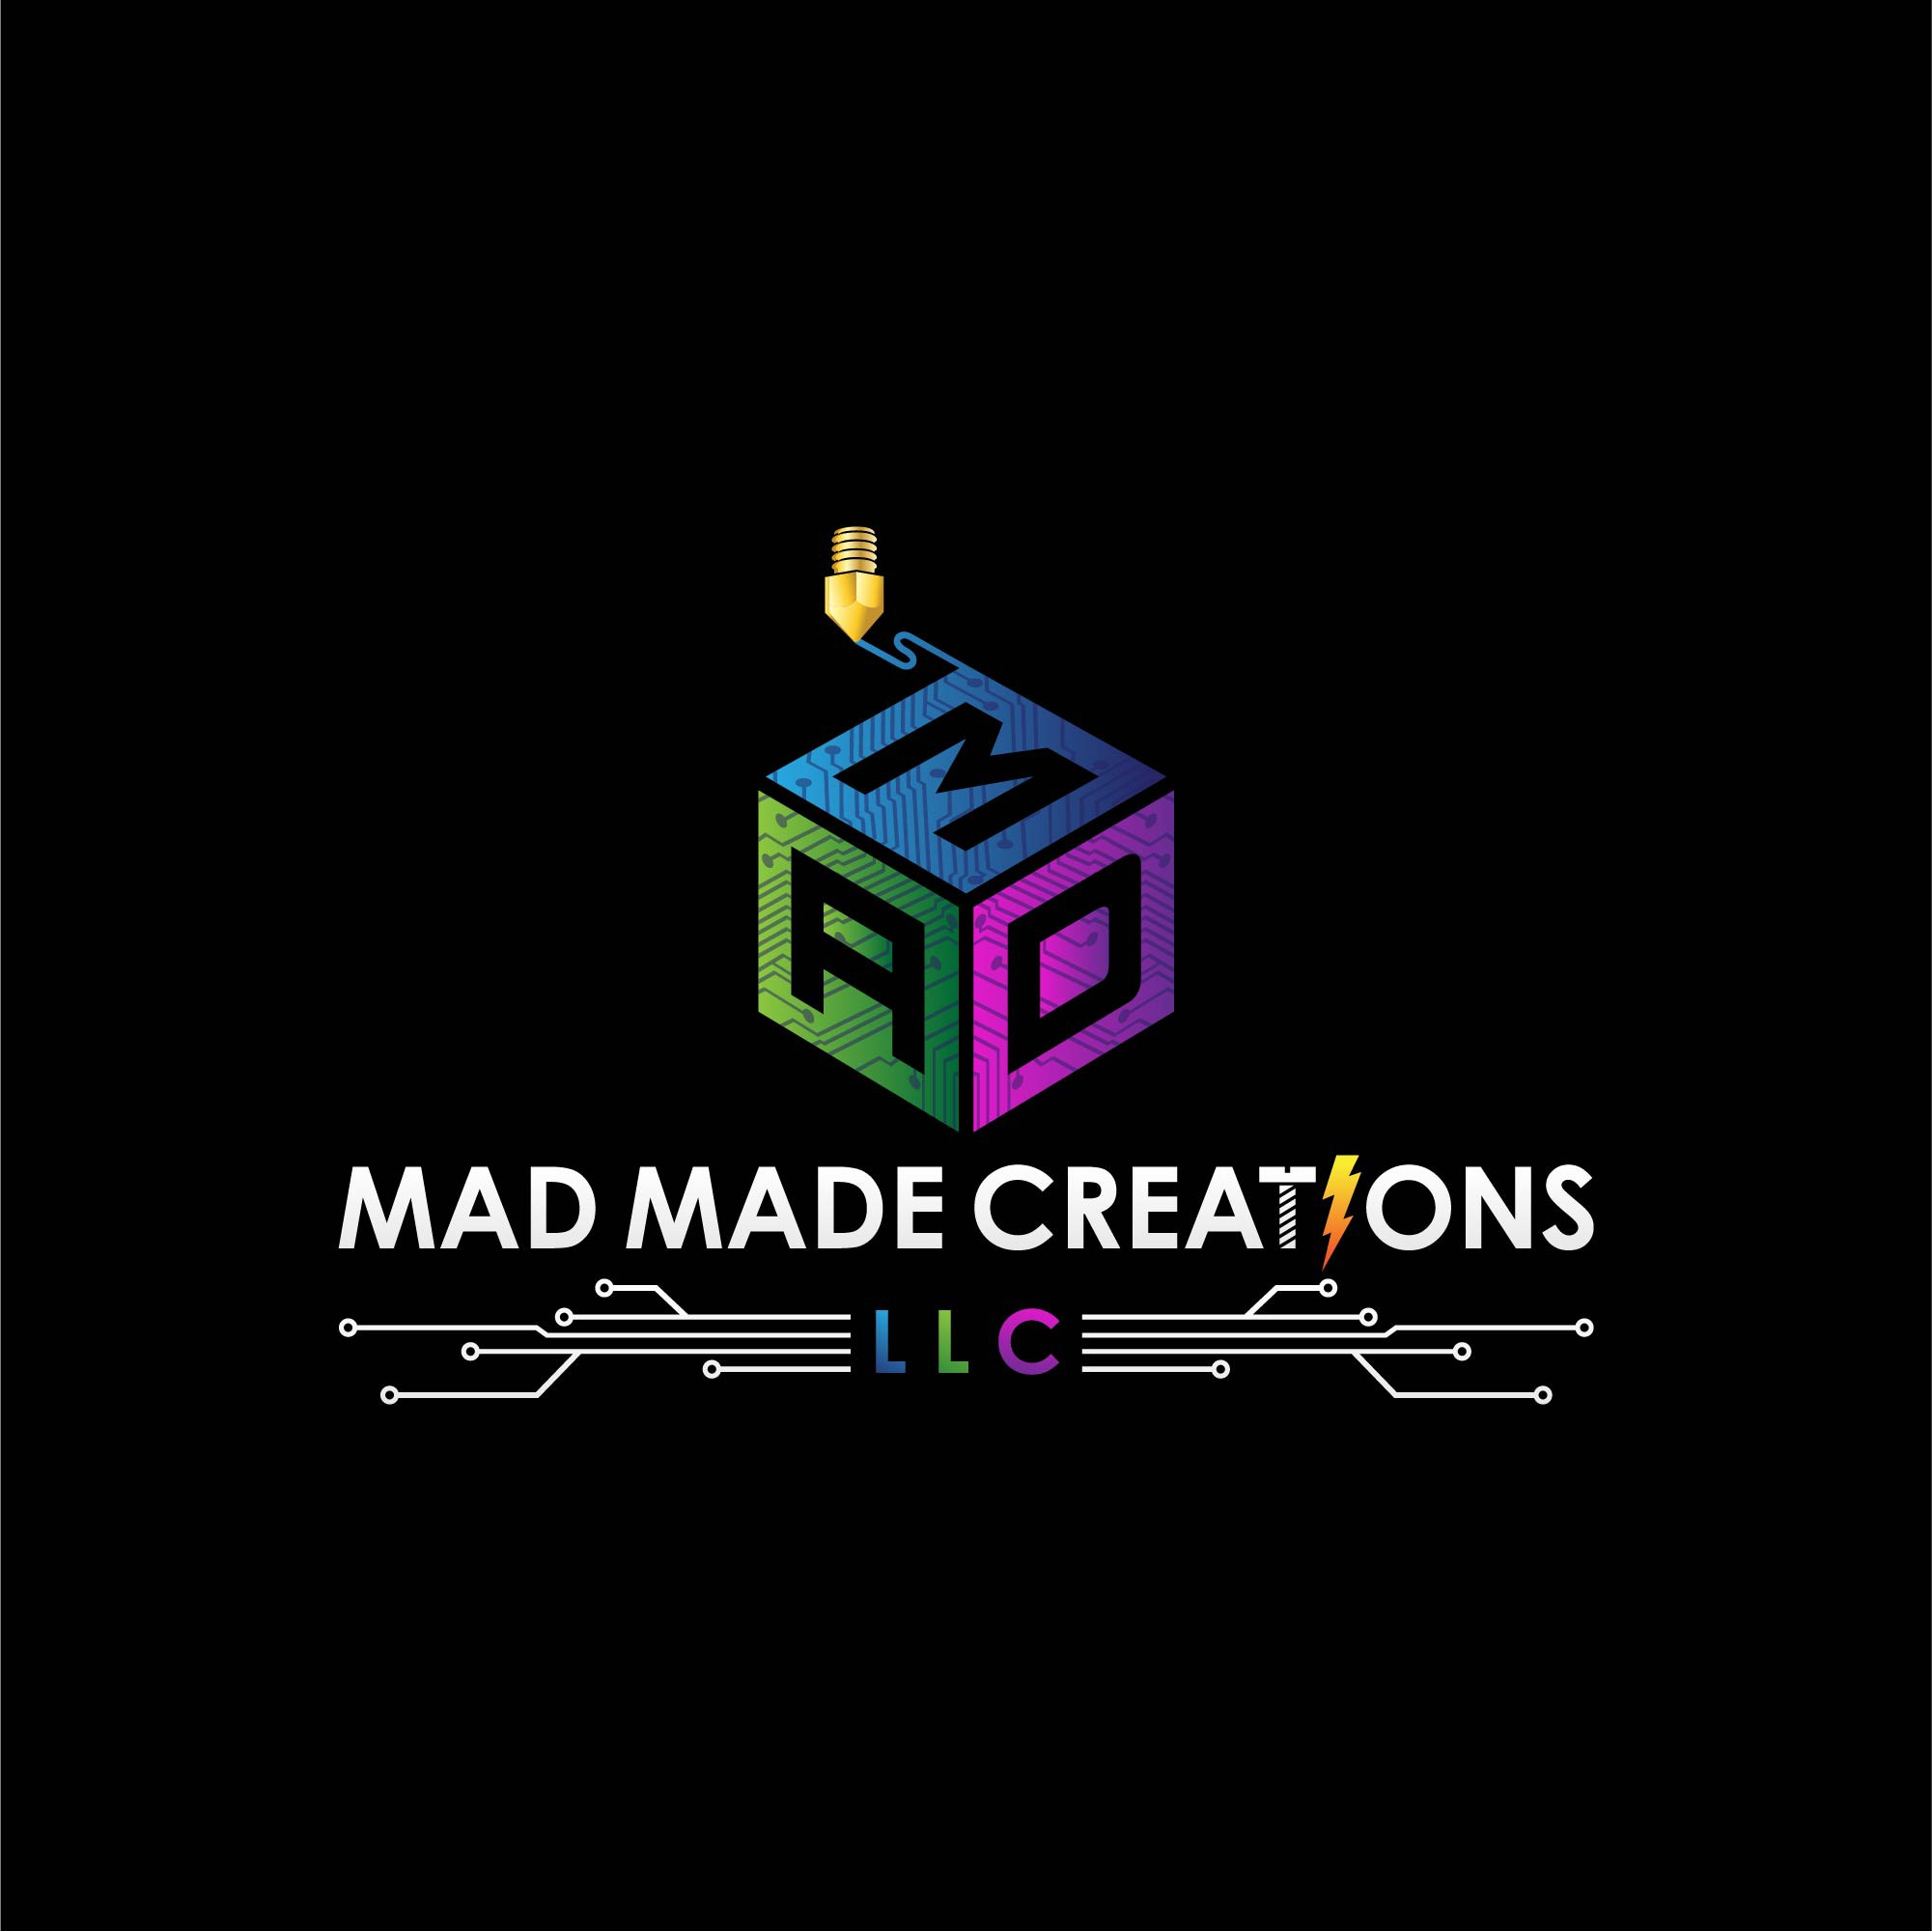 Custom Design & 3D Printing service looking for creative/modern & memorable logo with a wild and stylish edge.